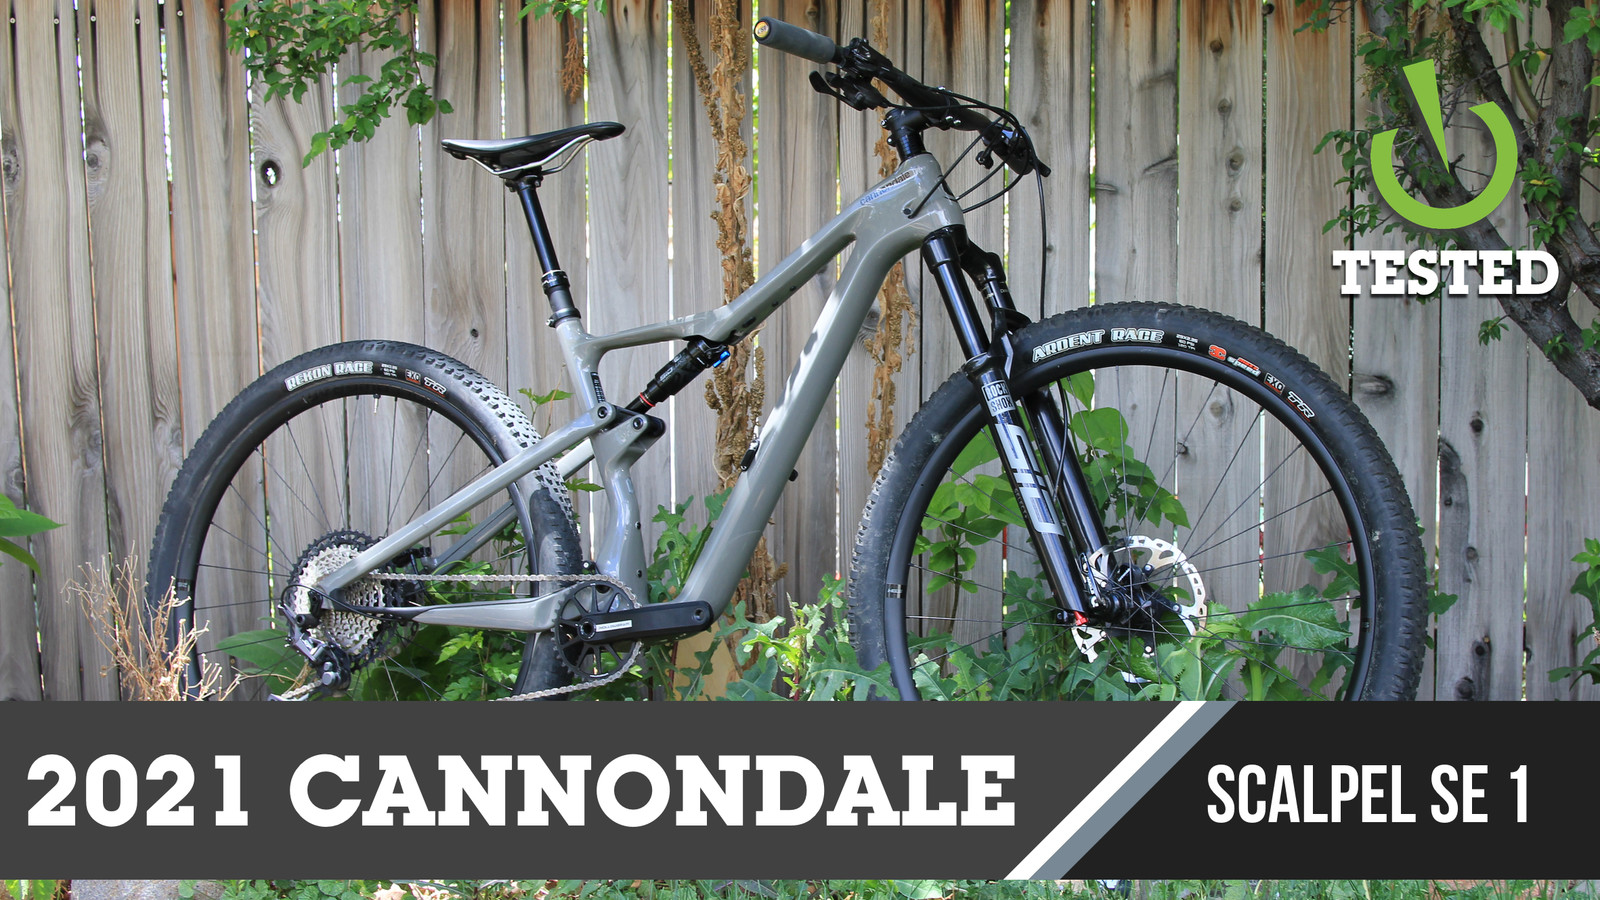 Is It Trail Enough? 2021 Cannondale Scalpel SE 1 Tested